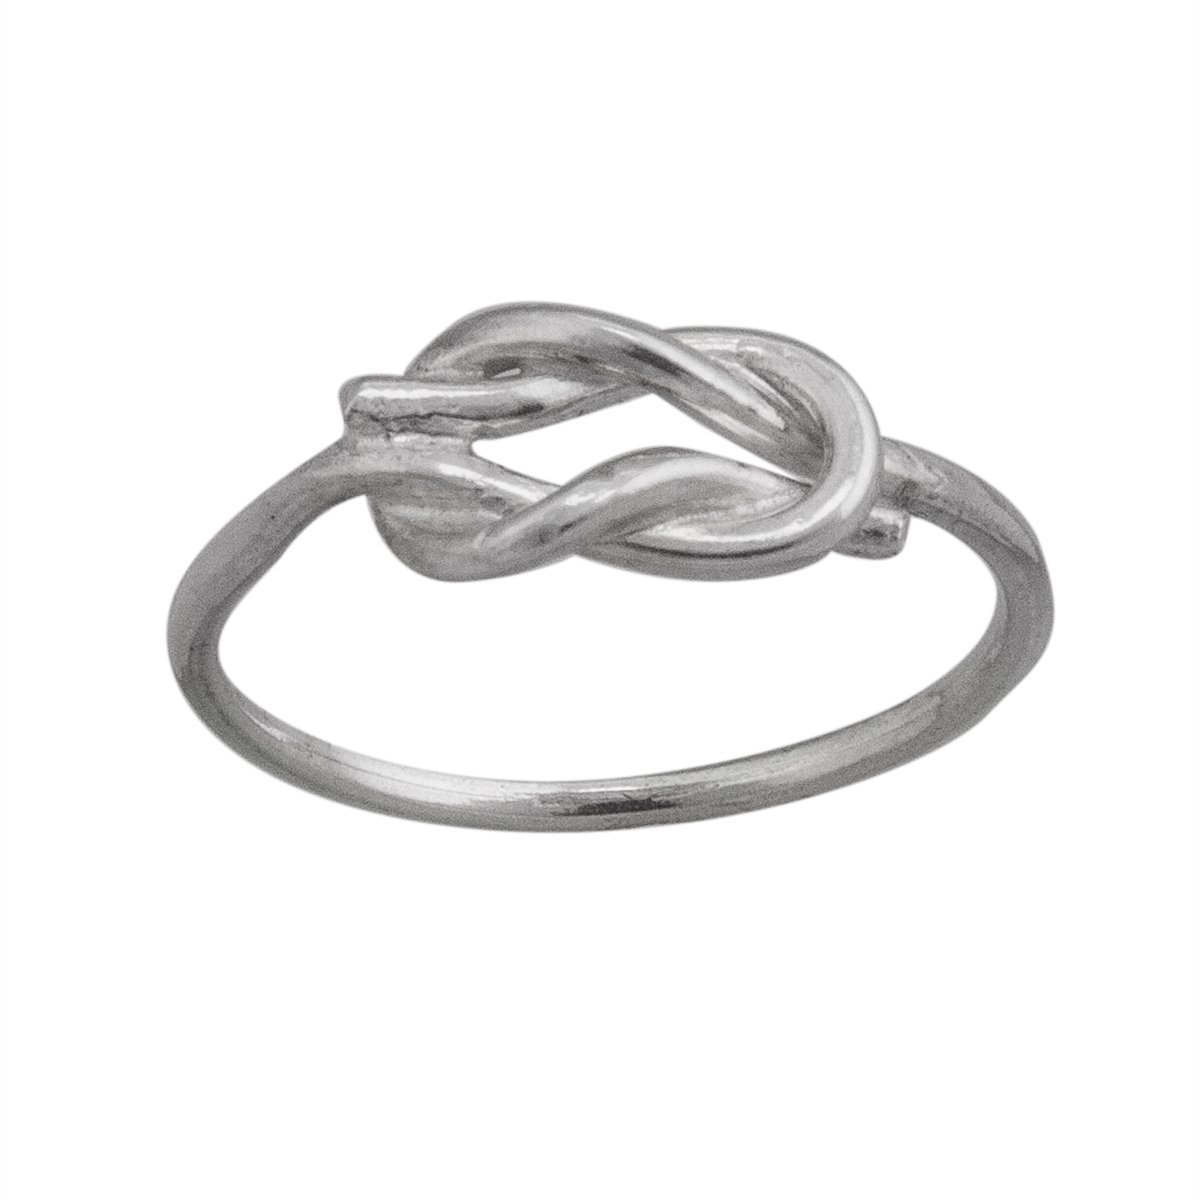 sterling-silver-assorted-sized-dozen-square-knot-rings - 1 - Charles Albert Inc